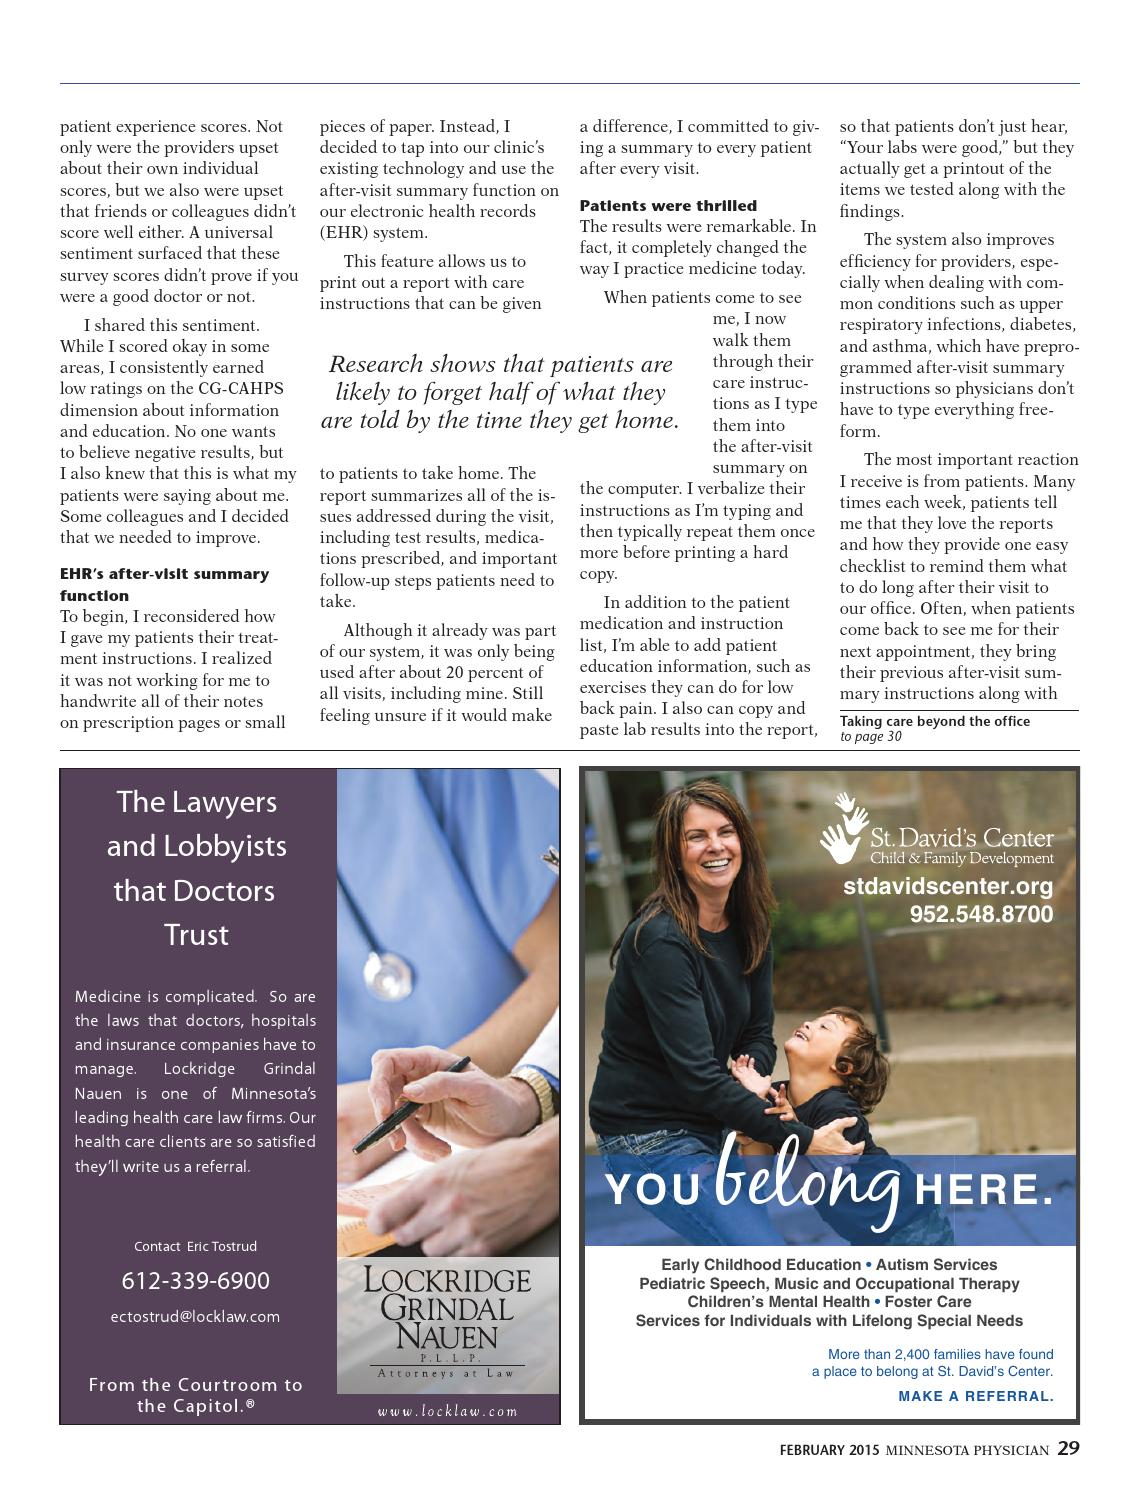 Minnesota Physician February 2015 by Minnesota Physician